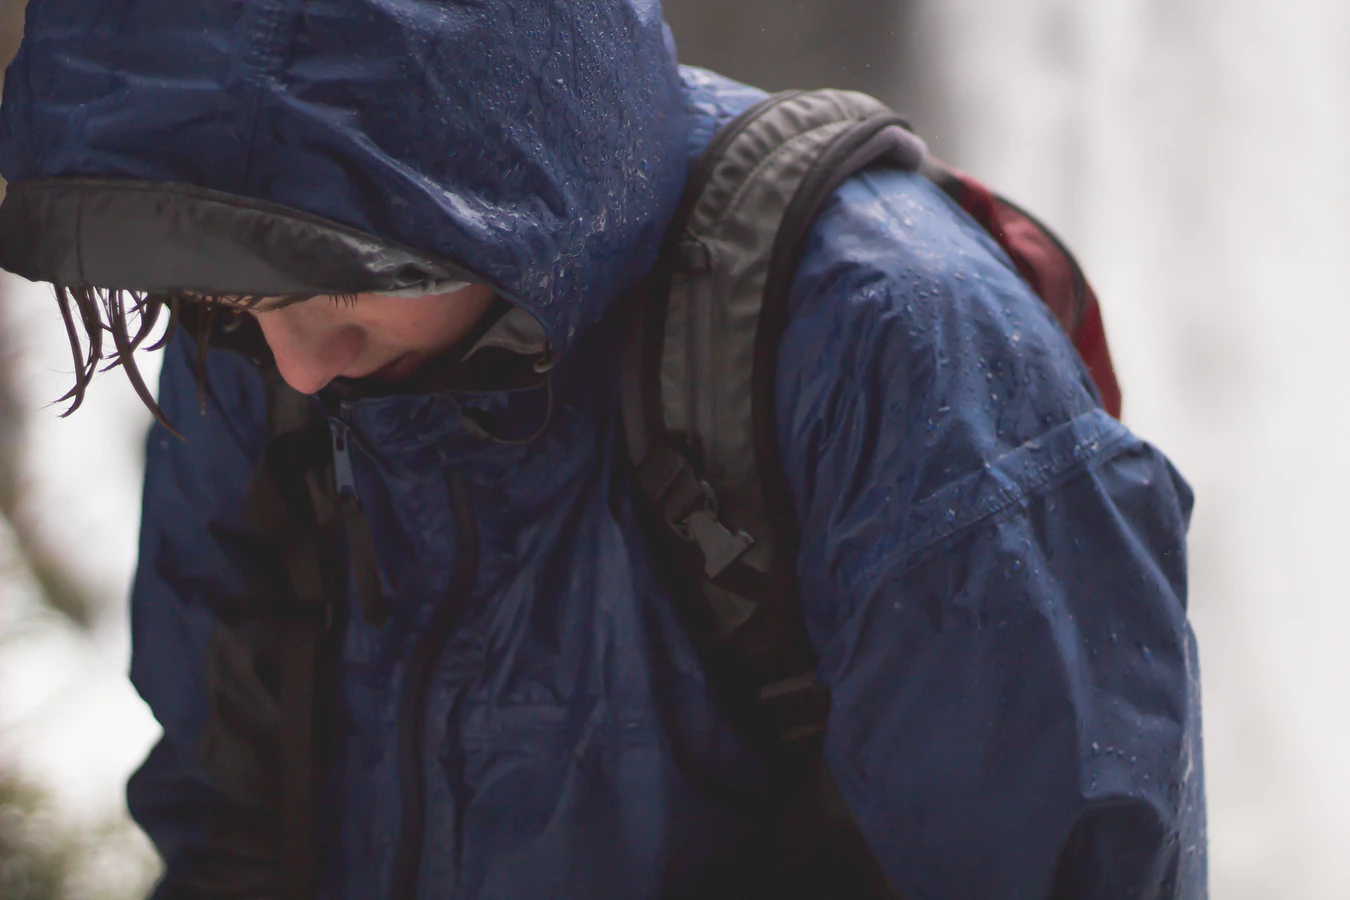 Close-up of a person wearing a raincoat in the rain